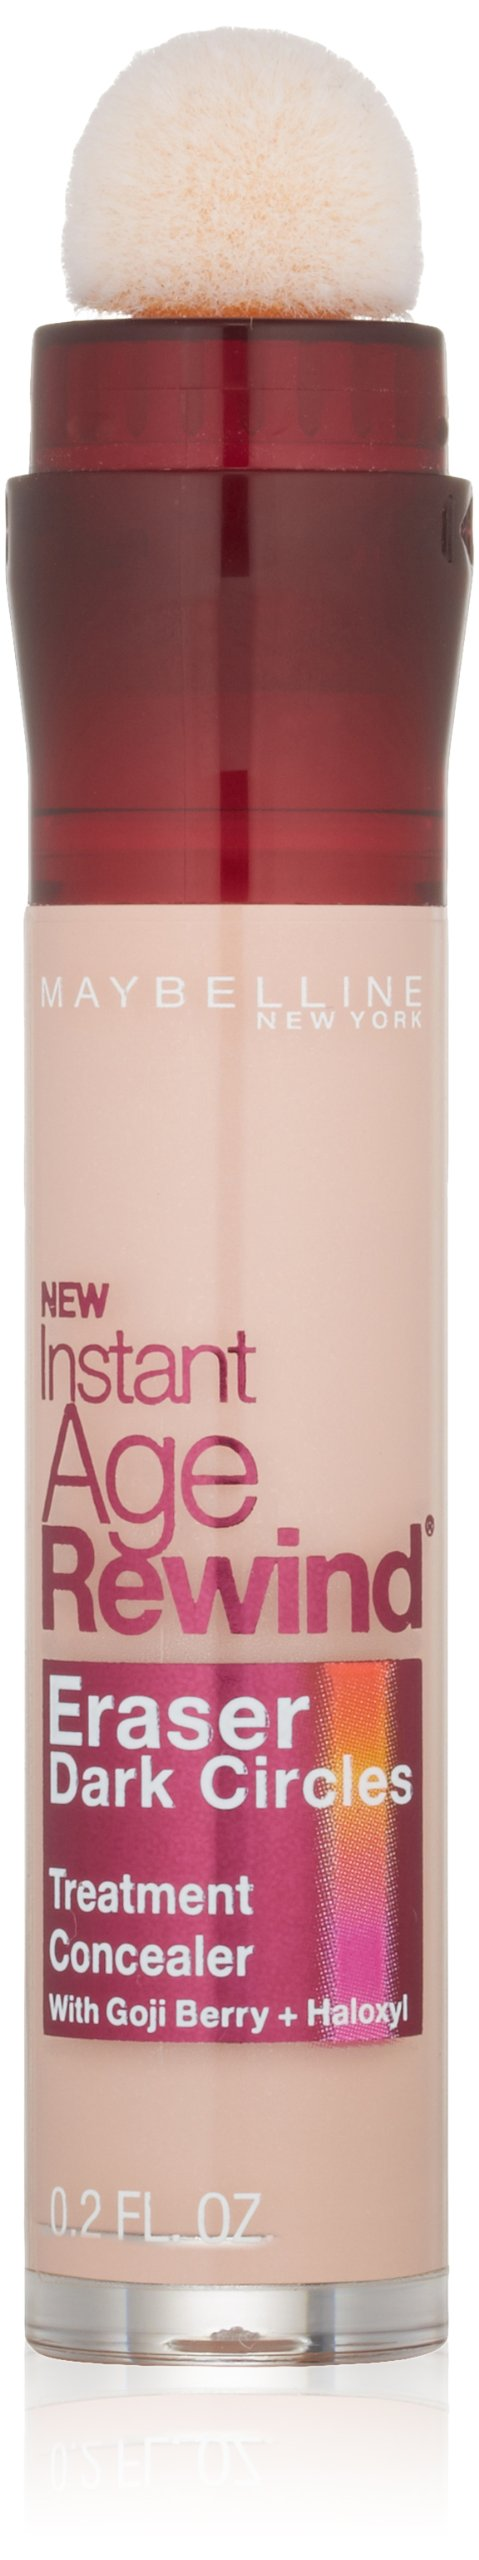 Maybelline Instant Age Rewind Eraser Dark Circles Treatment Concealer, Brightener, 0.2 fl. oz. by Maybelline New York